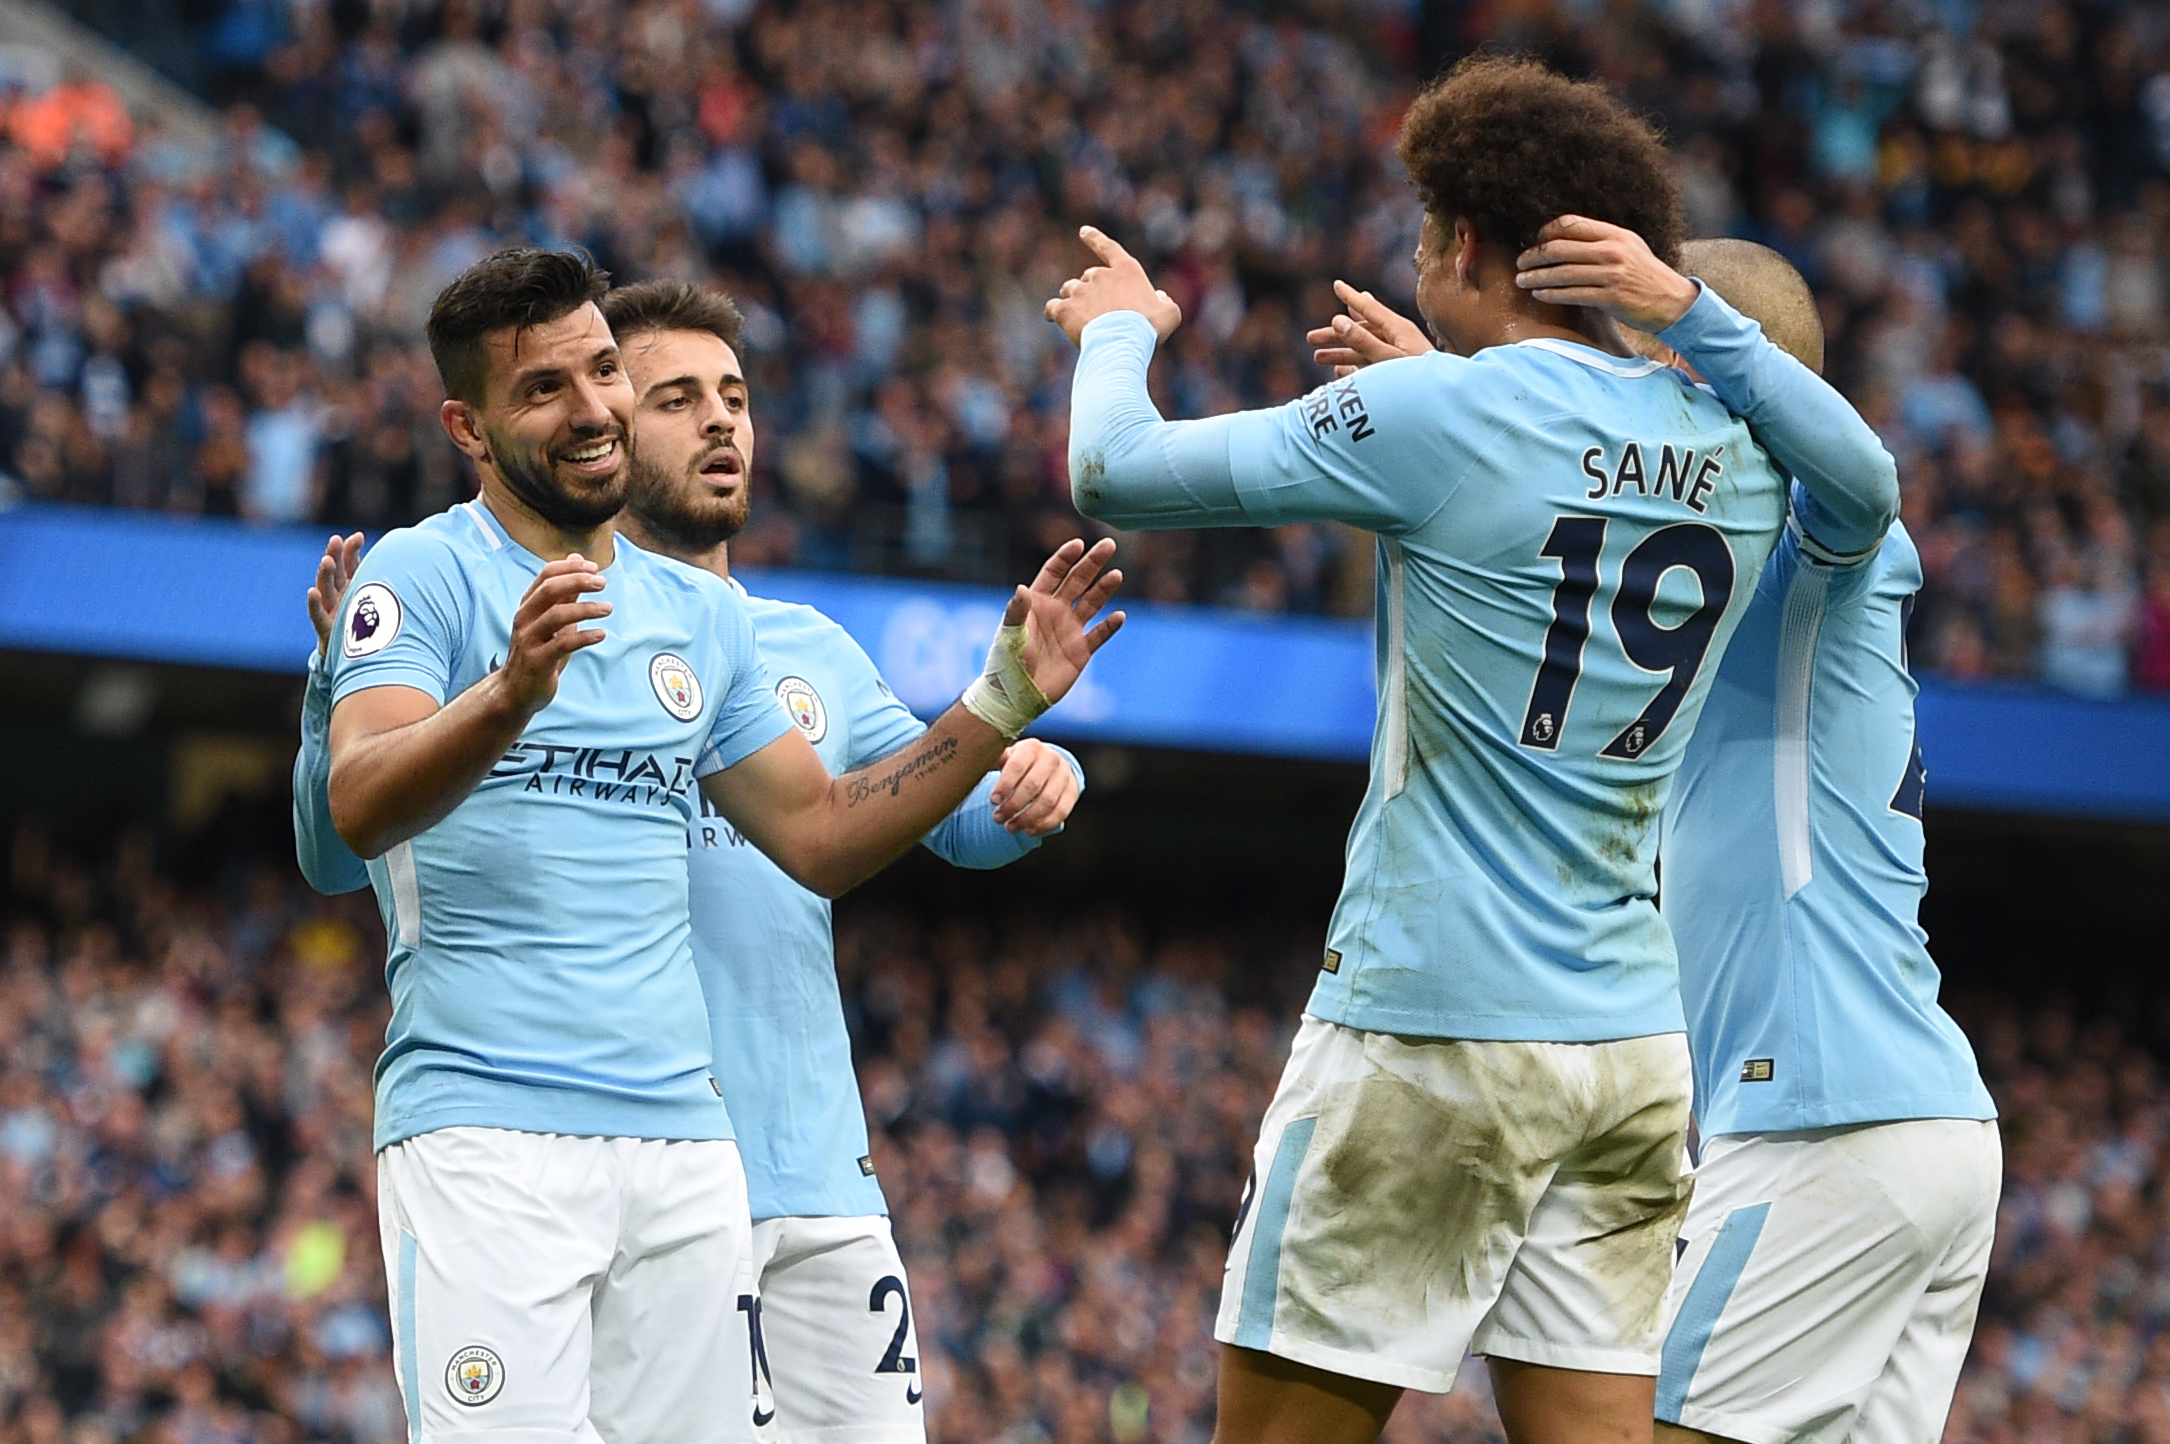 Manchester City aim to remain top of table against winless Crystal Palace